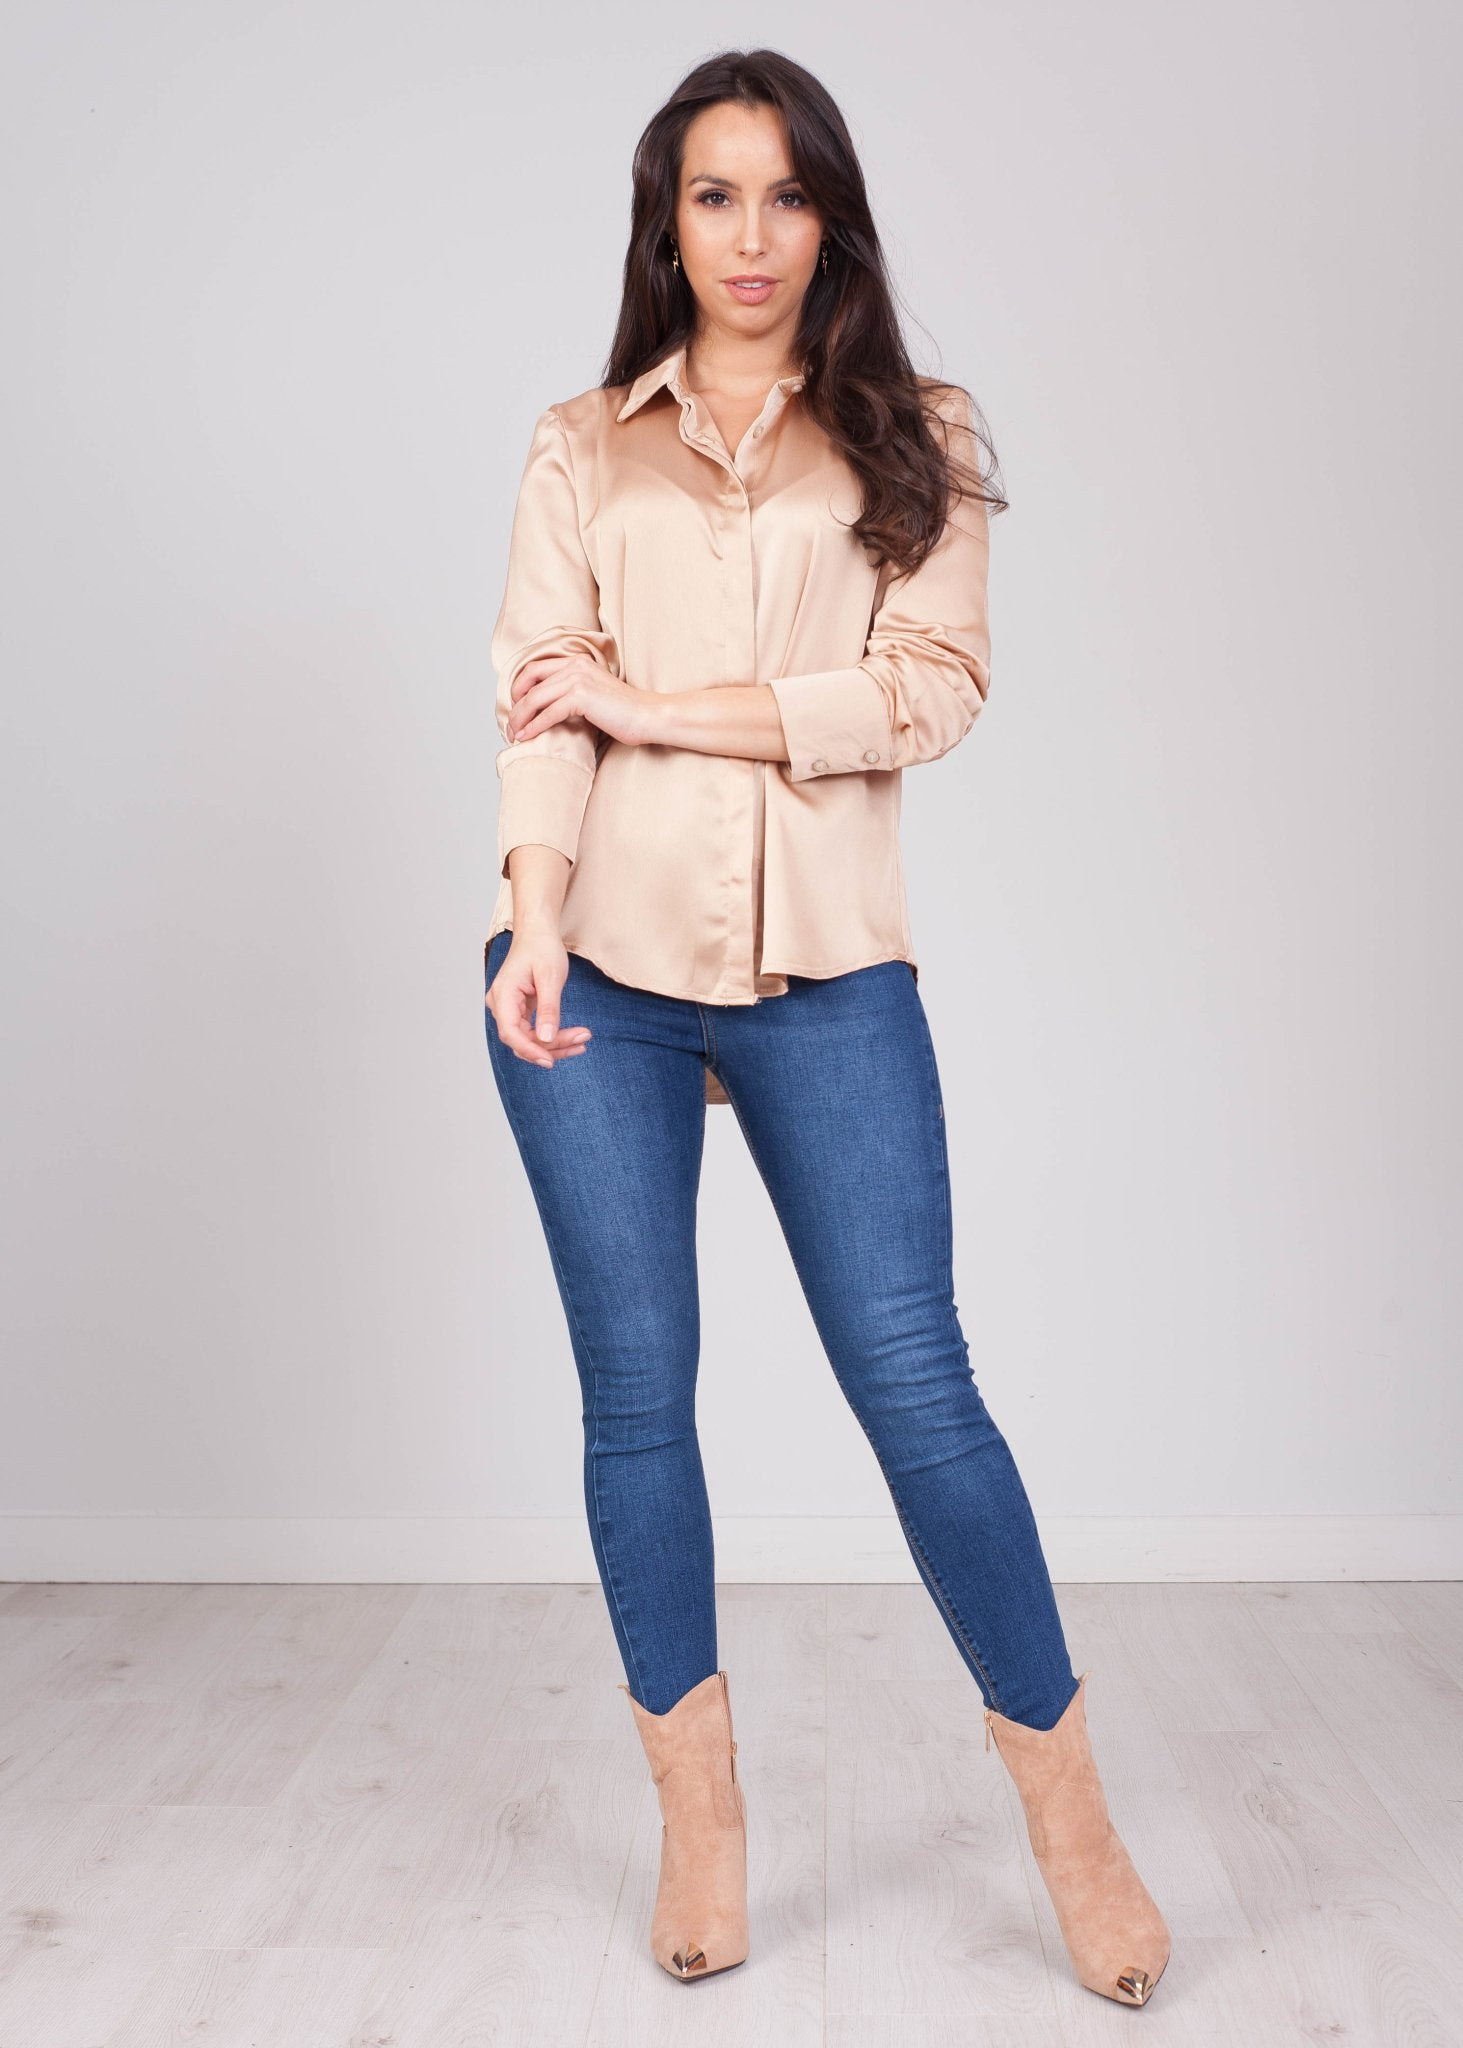 Priya Tan Silk Shirt - The Walk in Wardrobe